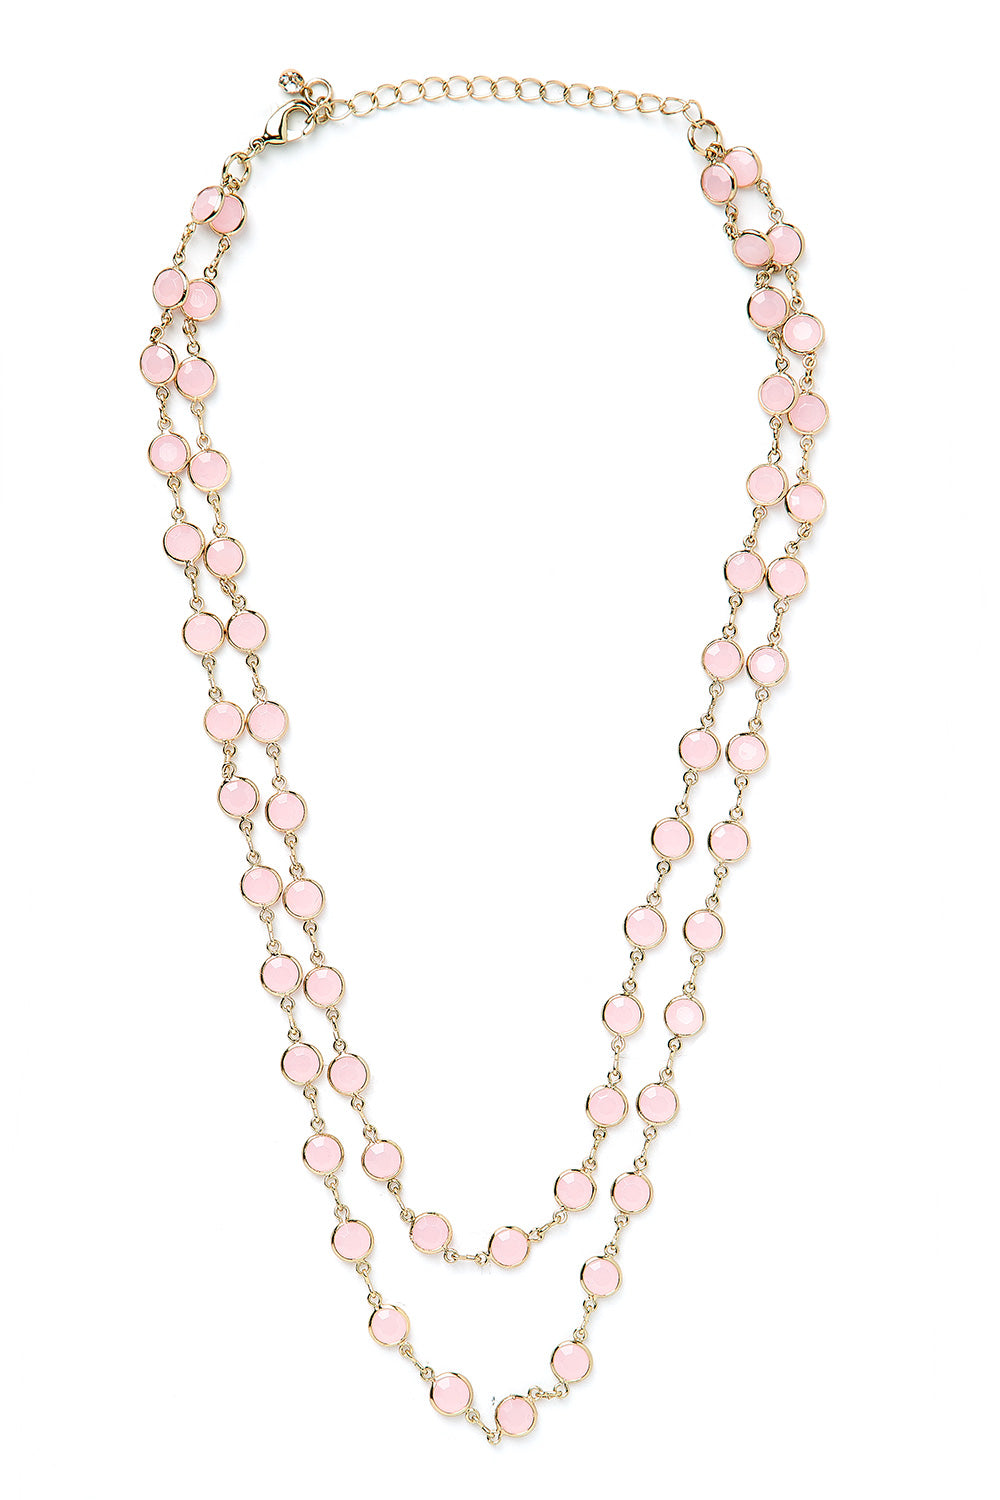 Type 1 Carbonated Pink Lemonade Necklace